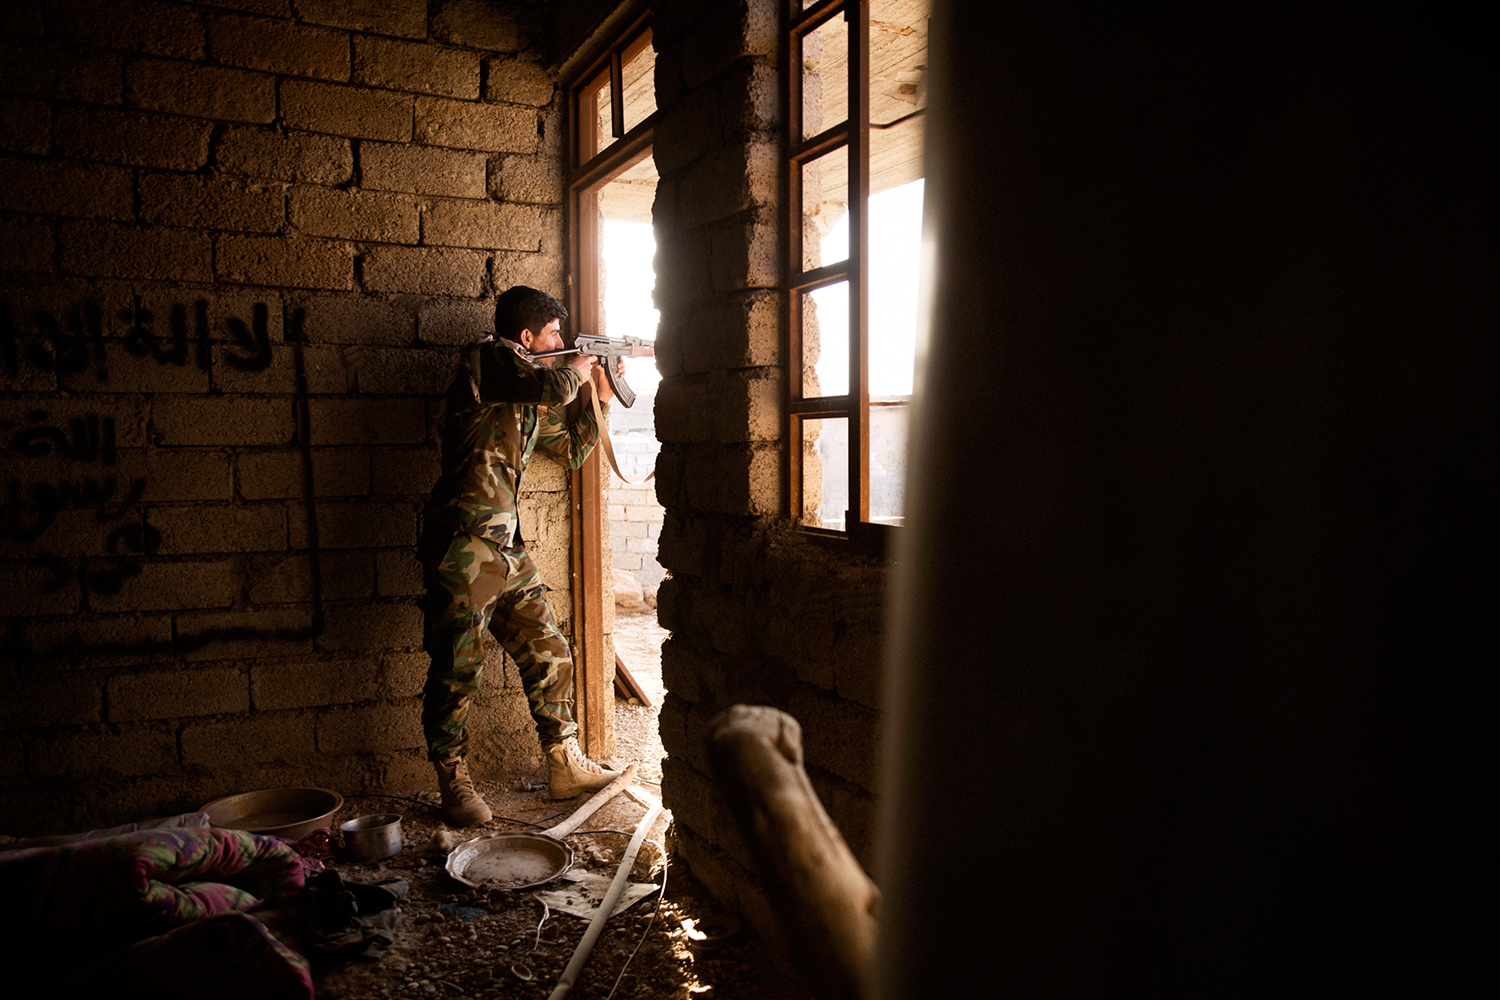 A Peshmerga fighter with his weapon